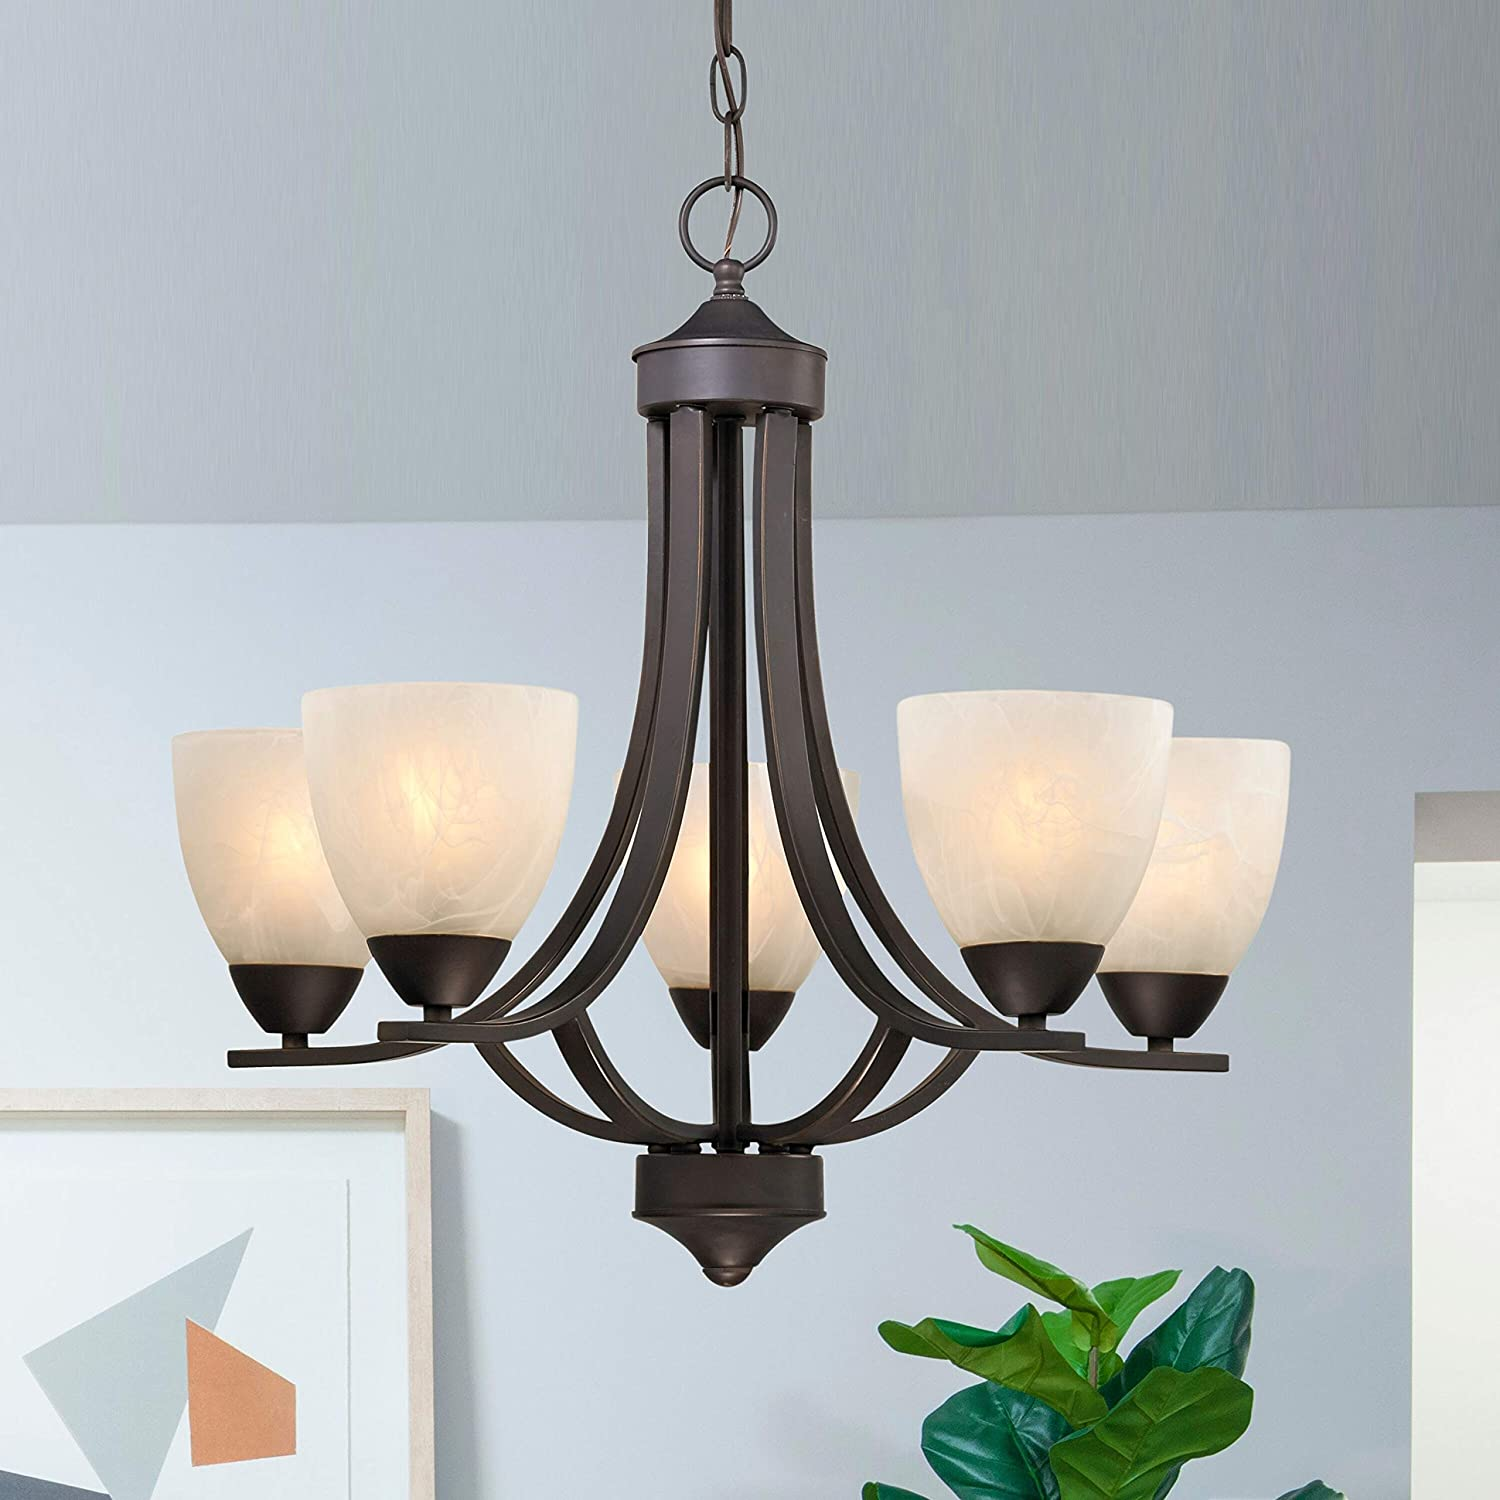 5 light chandelier with alabaster glass in bronze finish